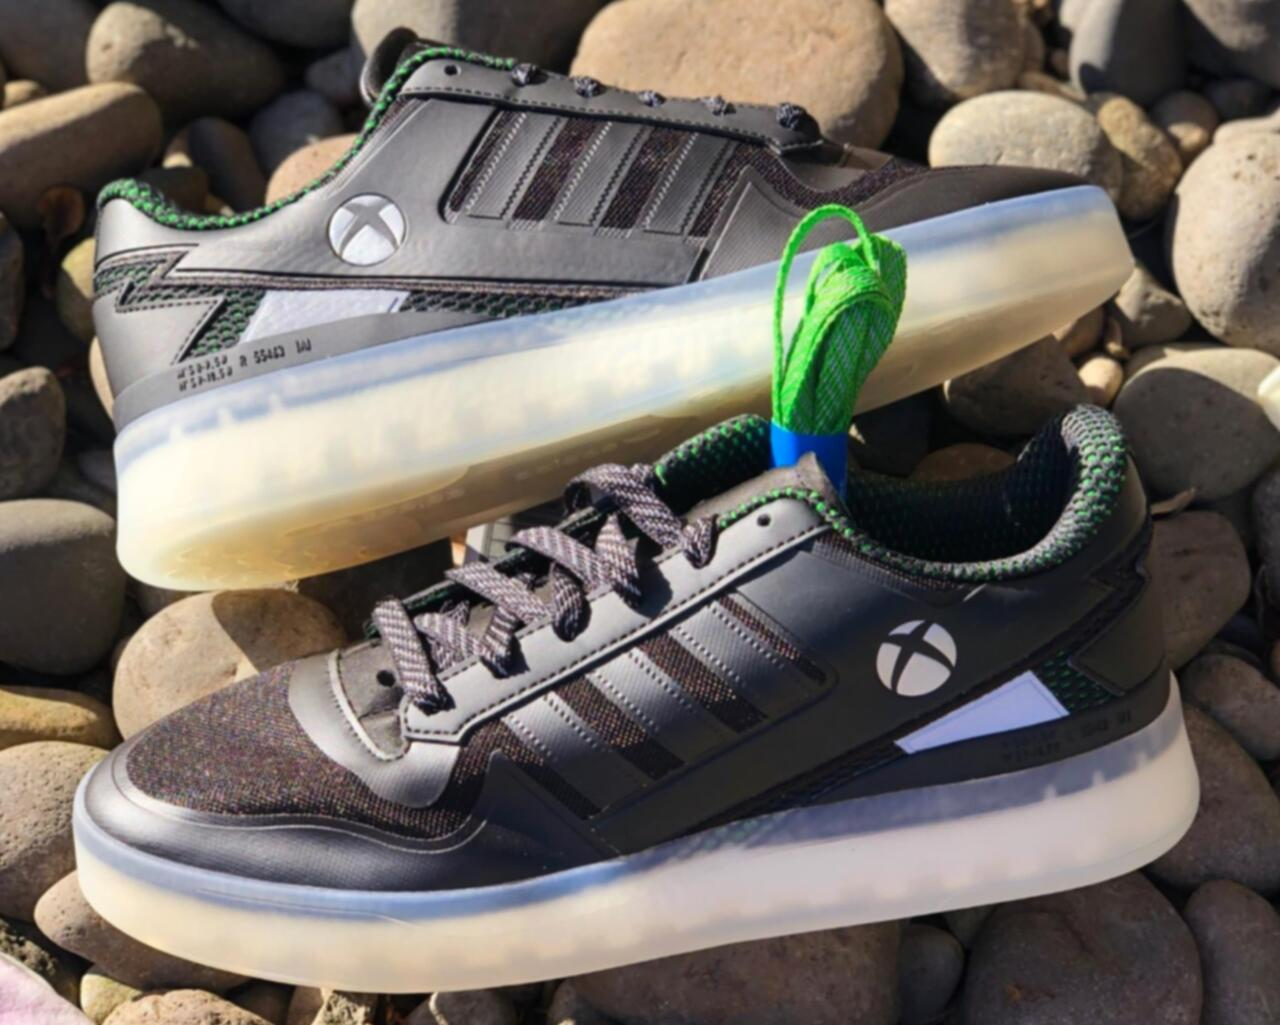 A prototype of the first pair of Adidas-Xbox shoes to be released, according to Complex's report.